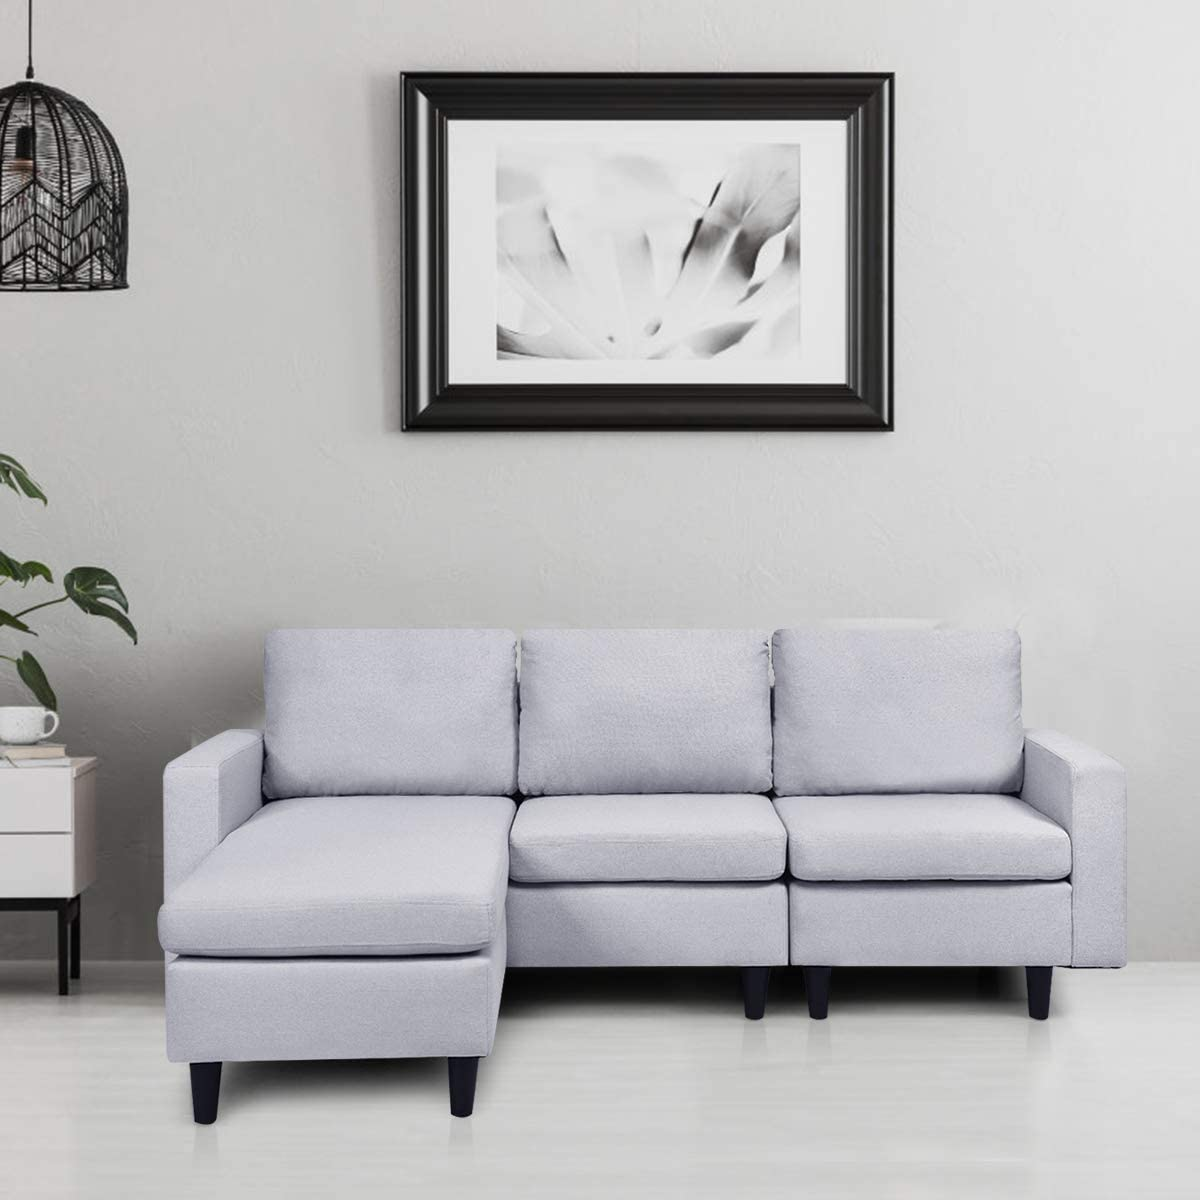 Giantex Convertible Sectional Sofa Couch with Reversible Chaise, L-Shaped Sofa Couch for Small Space Apartment, 3 Piece Linen Fabric Loveseat Couch Sets (Gray 2)